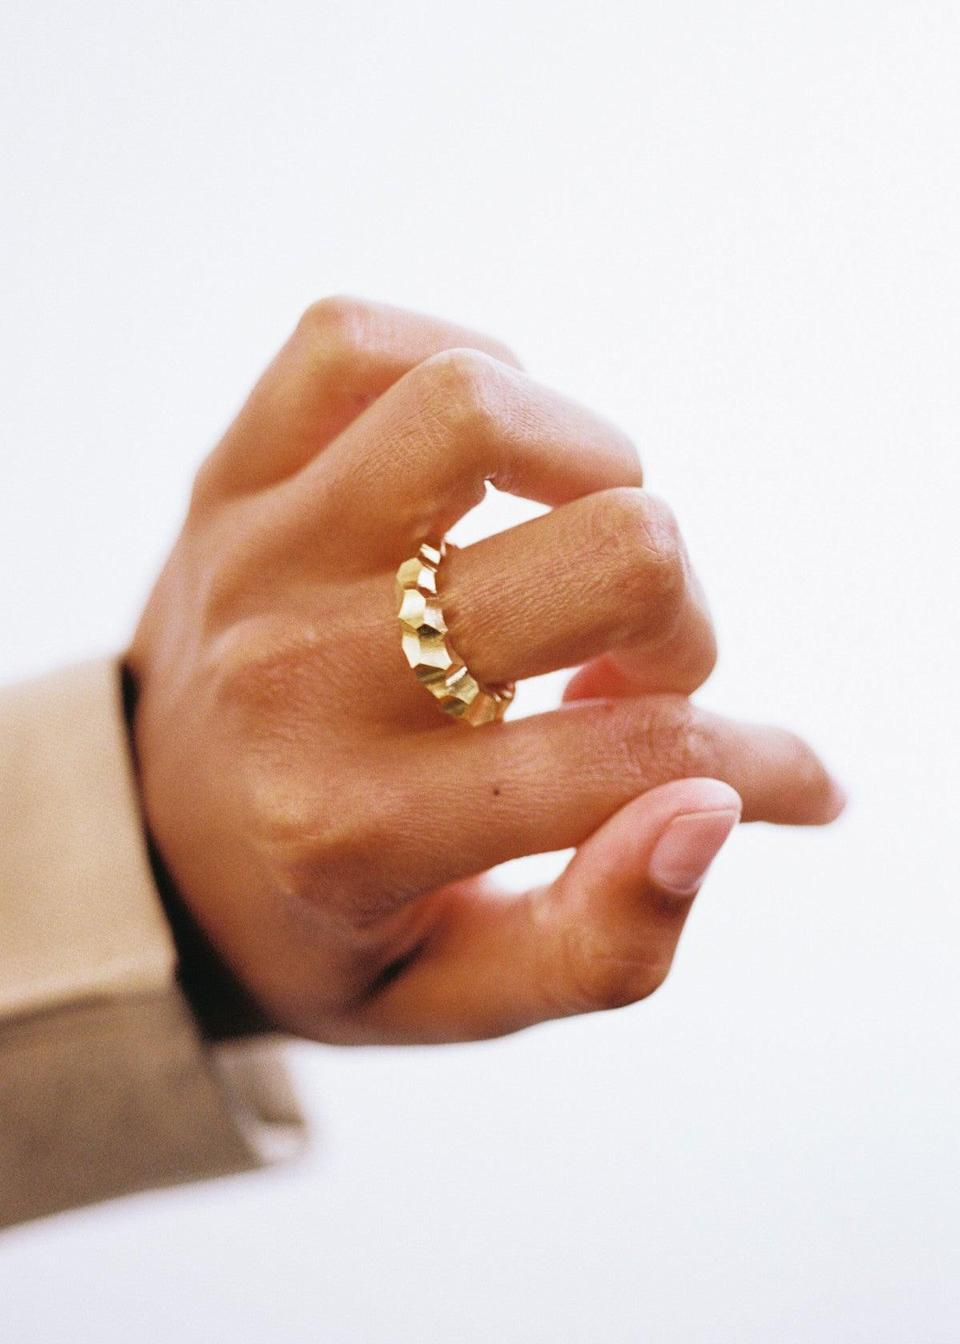 """I love minimal jewellery and I need more rings on my fingers, obviously. <br><br><strong>All Blues</strong> Snake Ring Thick, $, available at <a href=""""https://allblues.se/shop/snake-ring-thick-carved-gold"""" rel=""""nofollow noopener"""" target=""""_blank"""" data-ylk=""""slk:All Blues"""" class=""""link rapid-noclick-resp"""">All Blues</a>"""